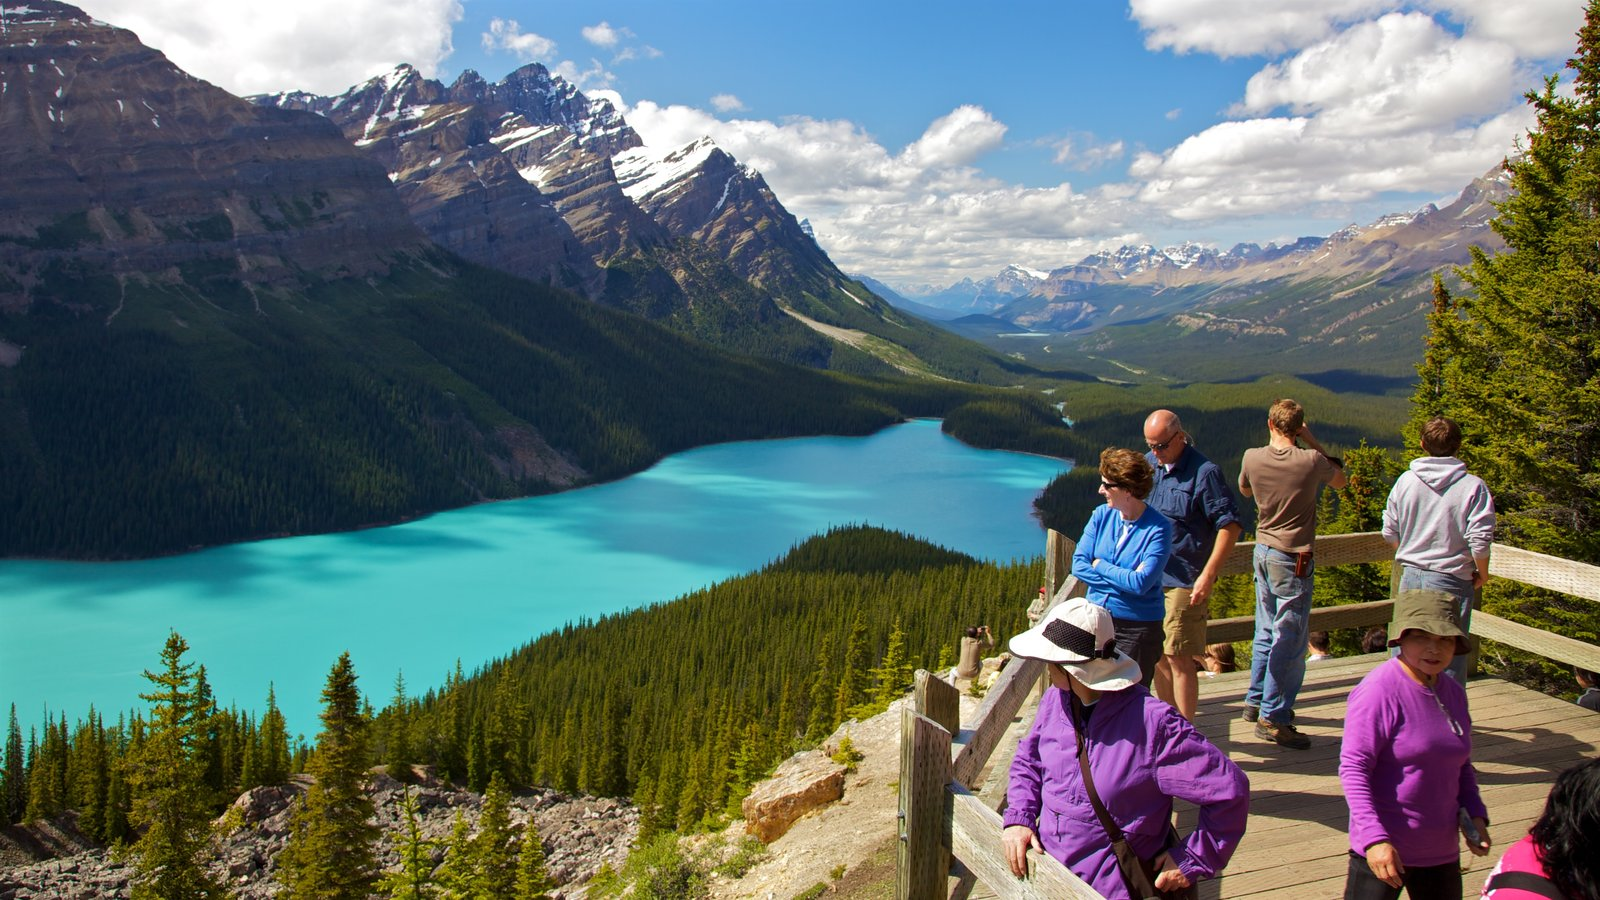 Peyto Lake which includes views, a lake or waterhole and mountains